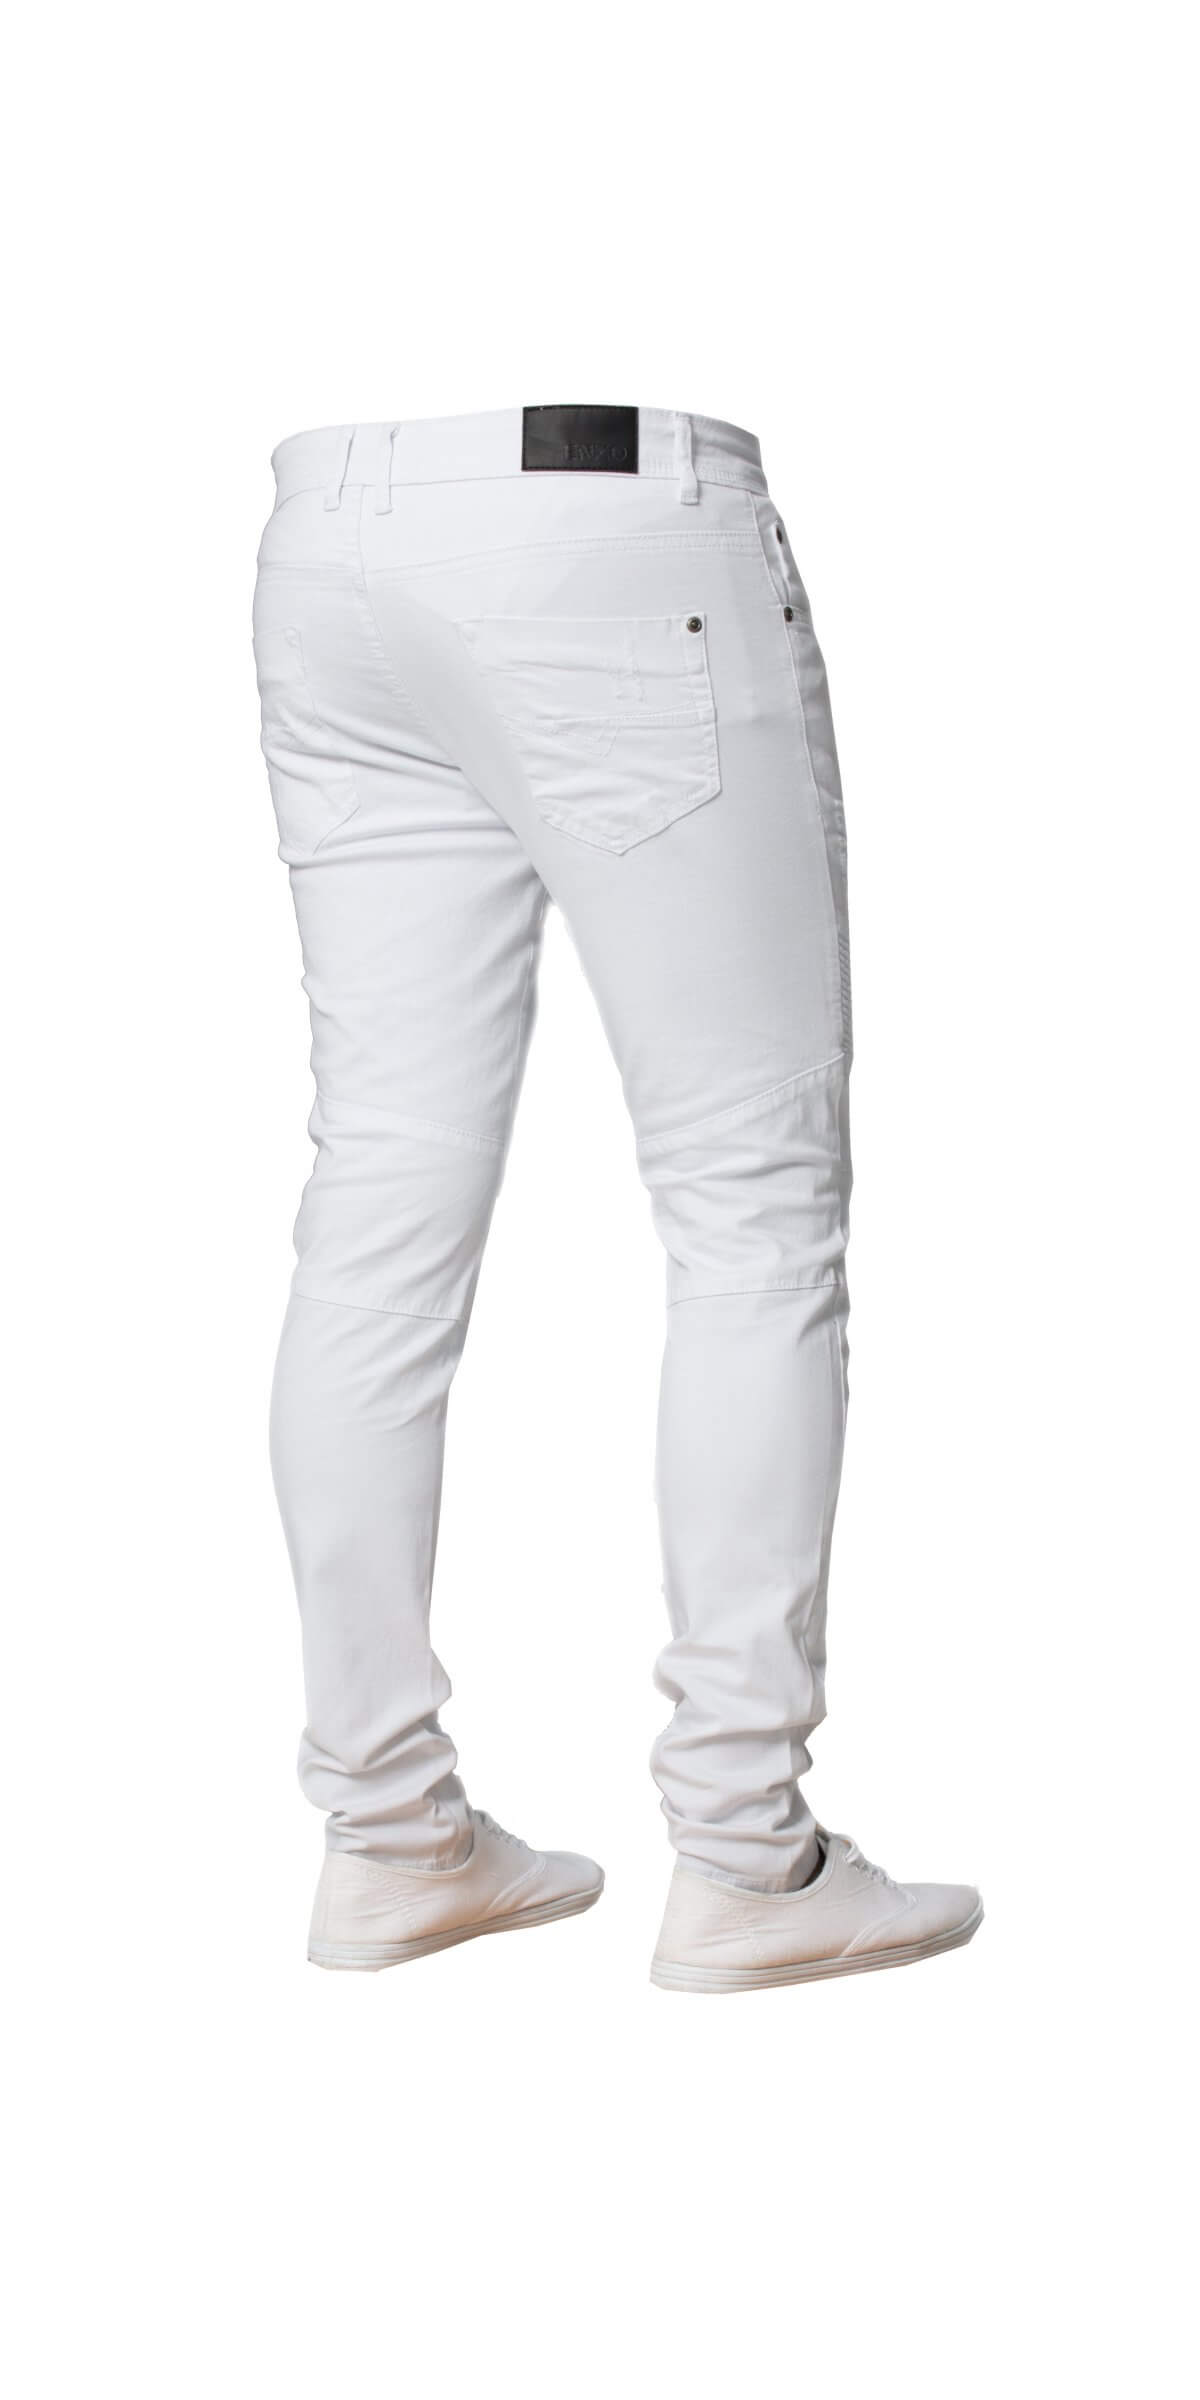 Mens White Super Skinny Stretch Biker Denim Jeans | Enzo Designer Menswear